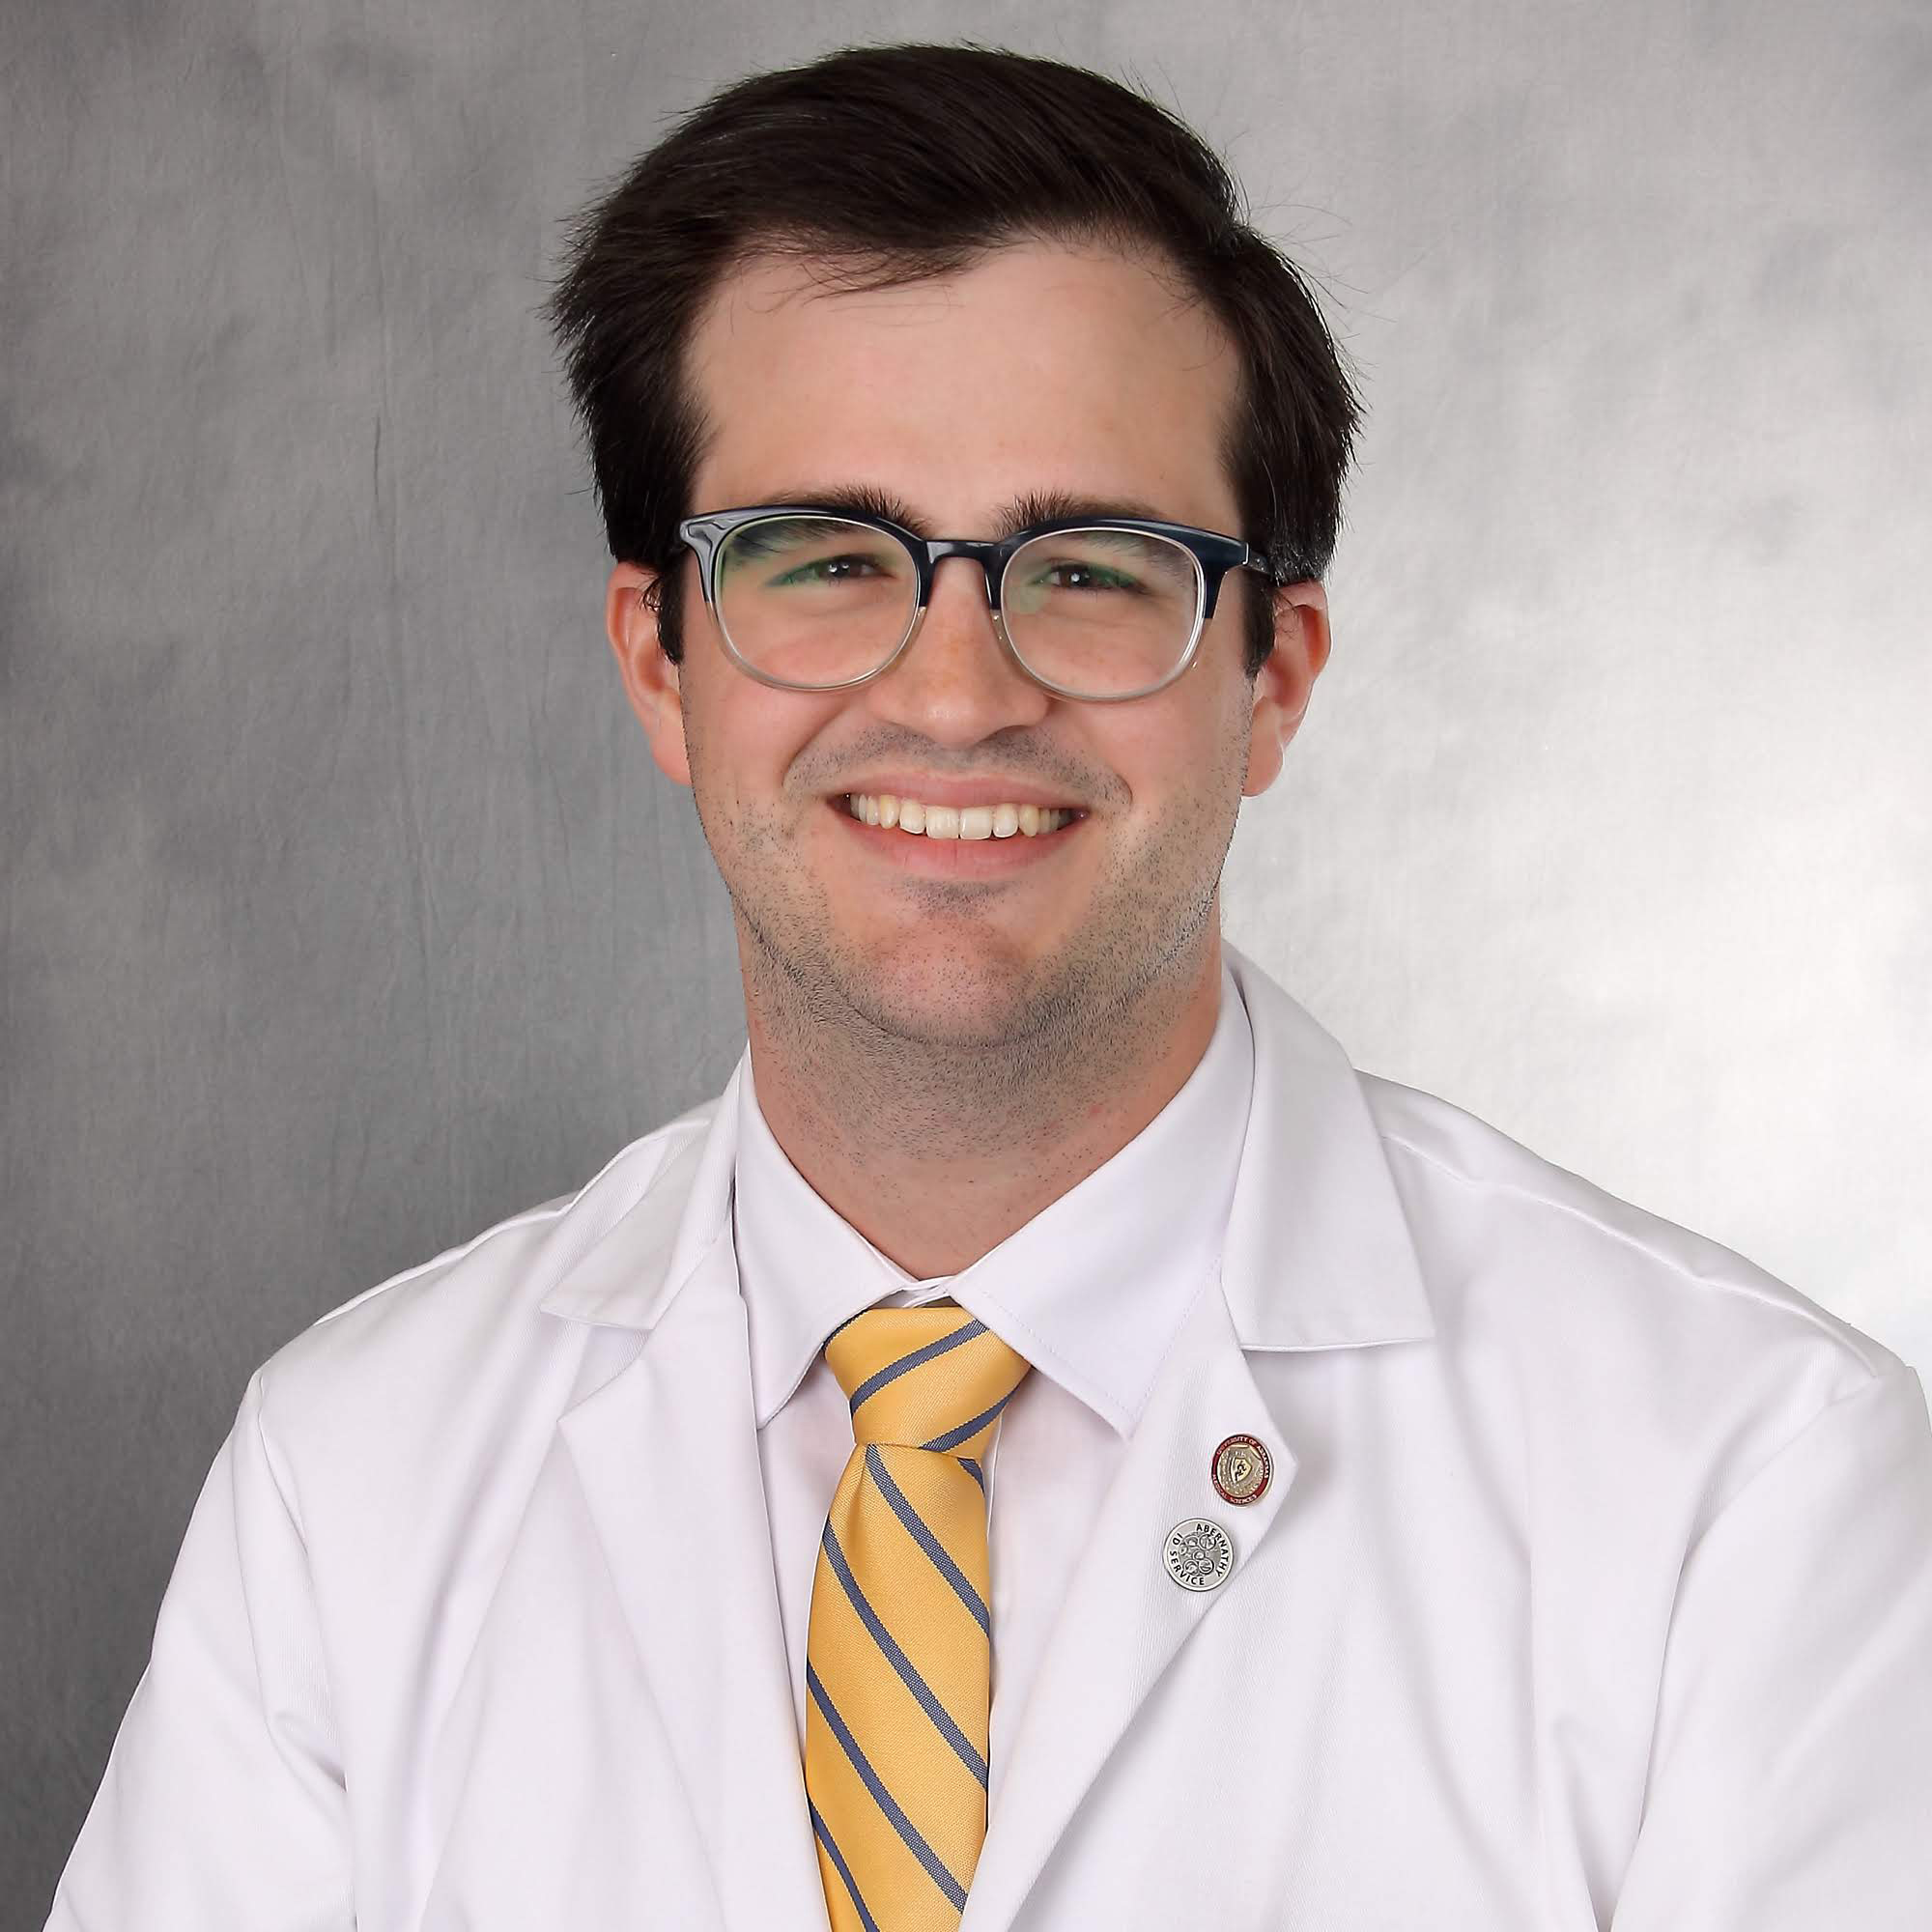 UAB - School of Medicine - Pediatrics - Our Med-Peds Residents